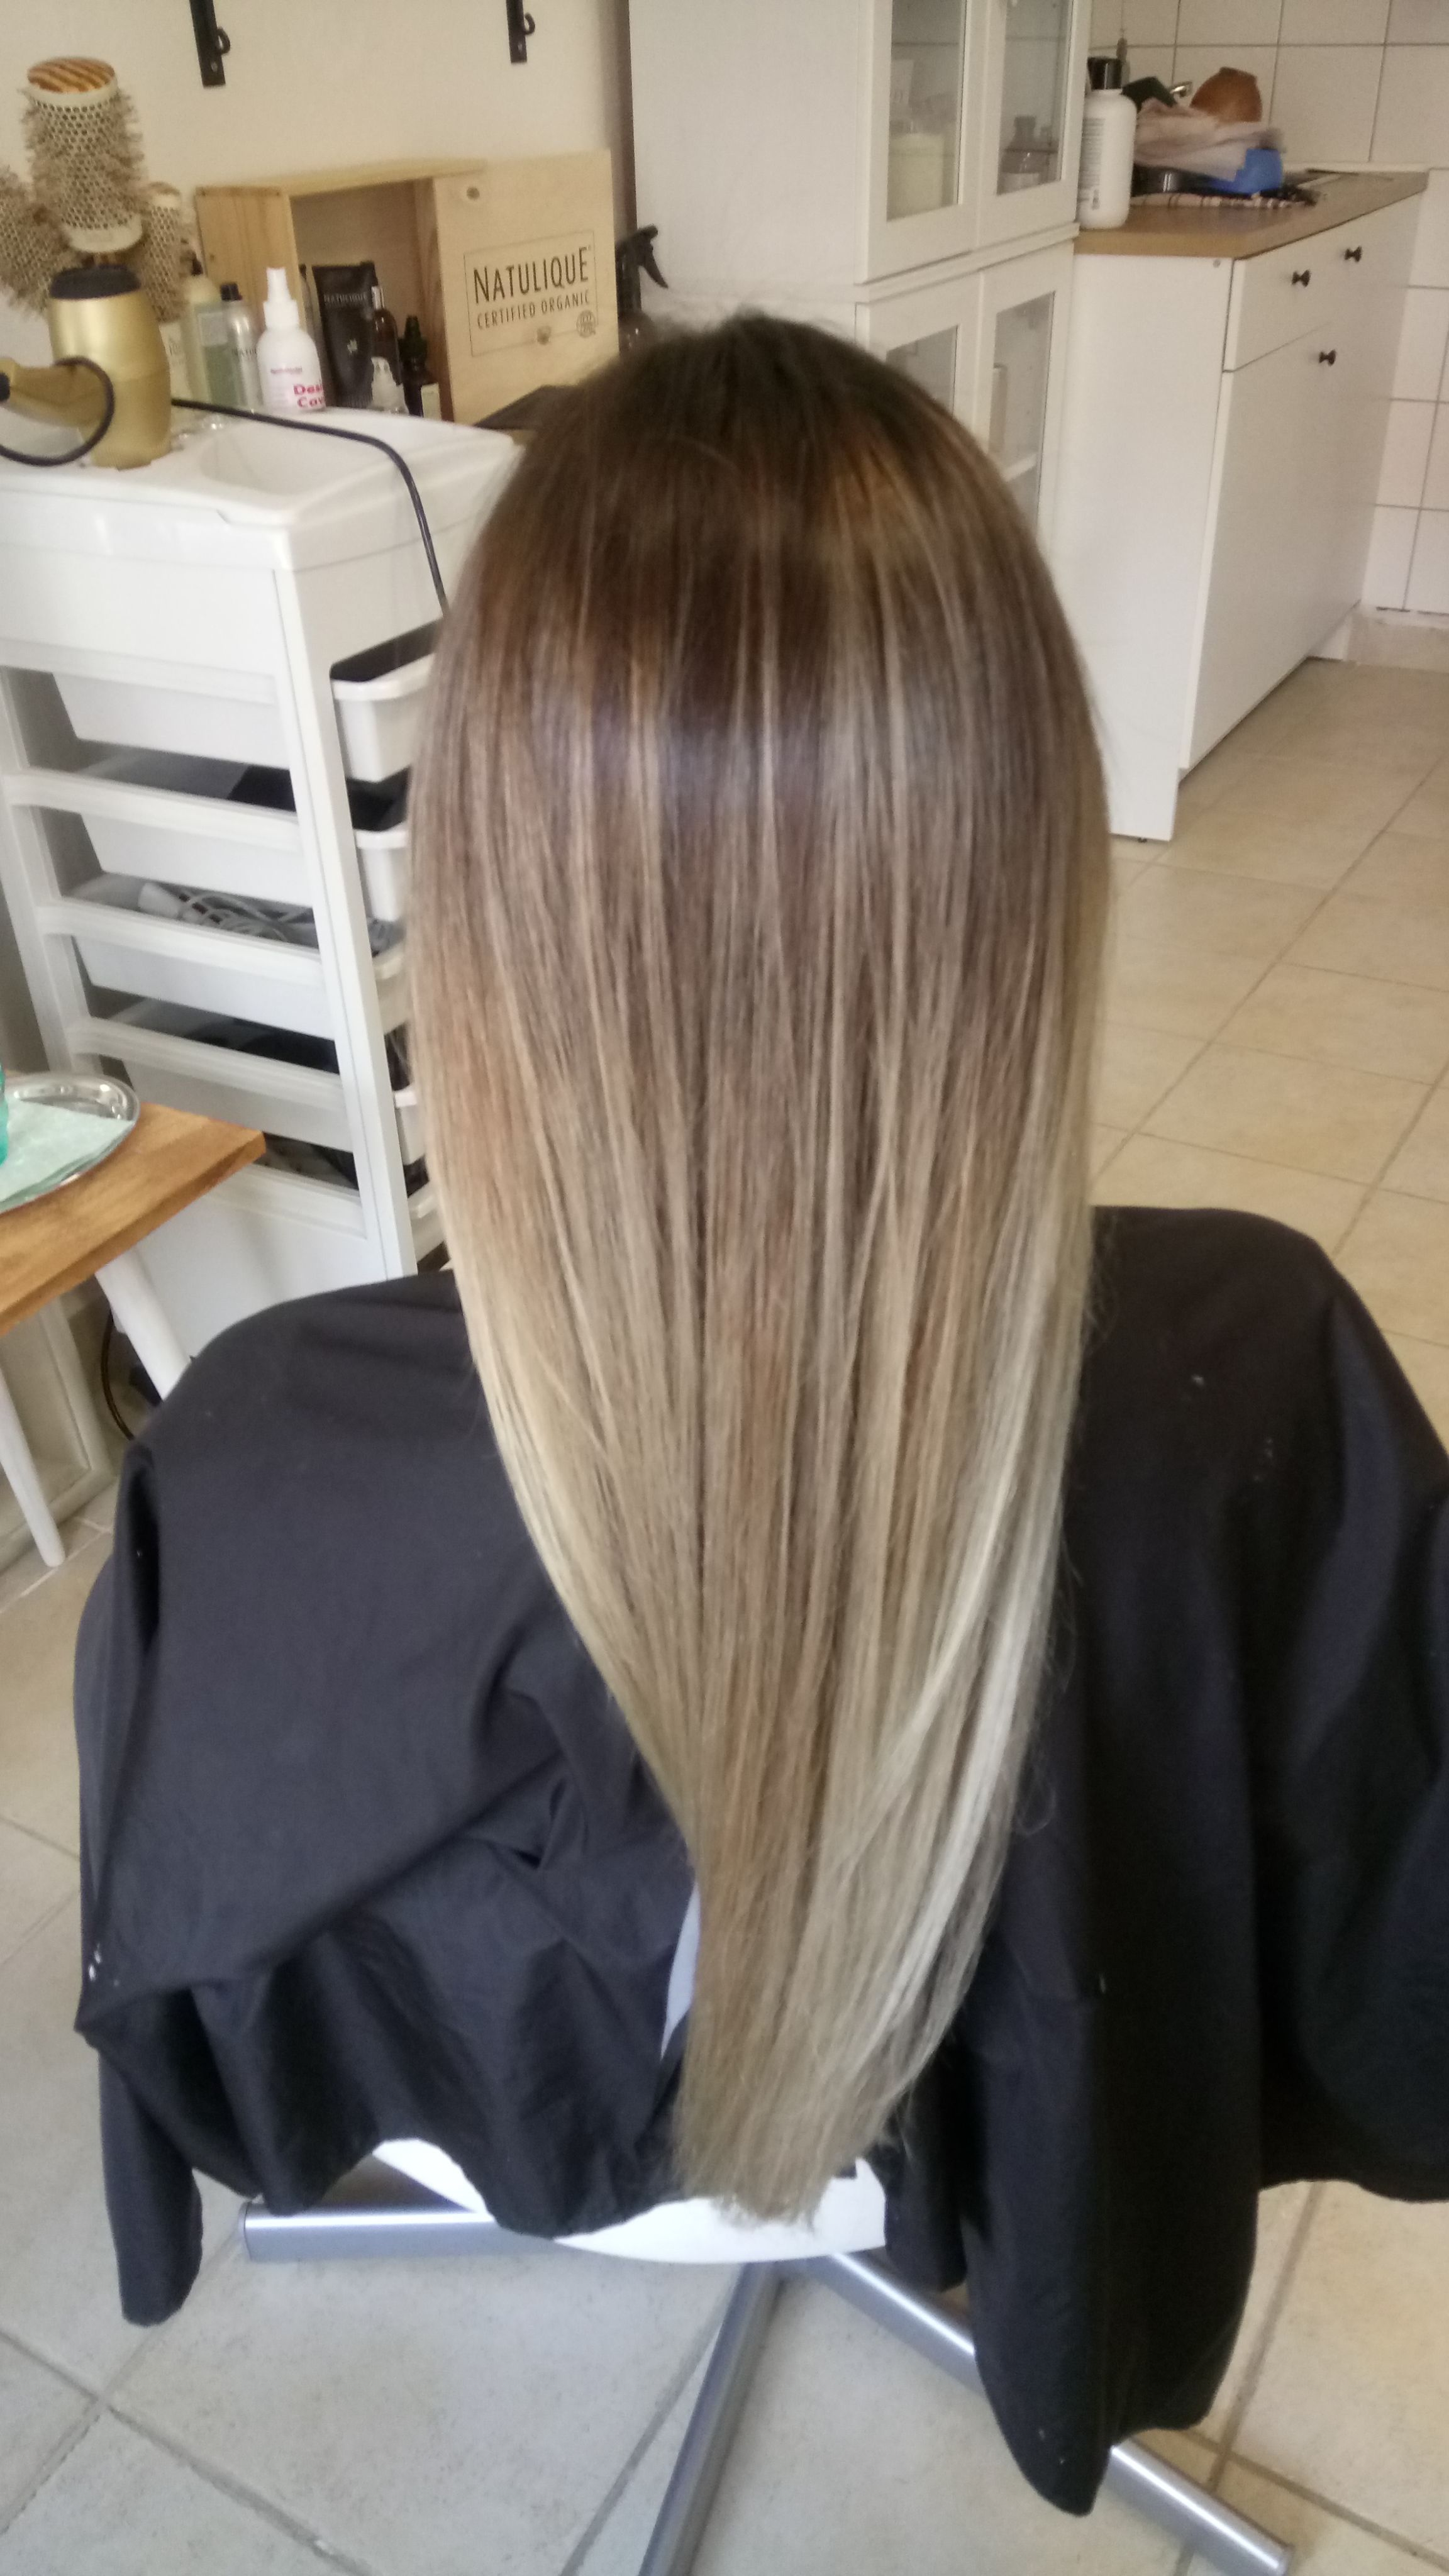 Balayage Blonde Brown Long Hair Straight Balayage Straight Hair Balayage Hair Blonde Straight Straight Blonde Hair